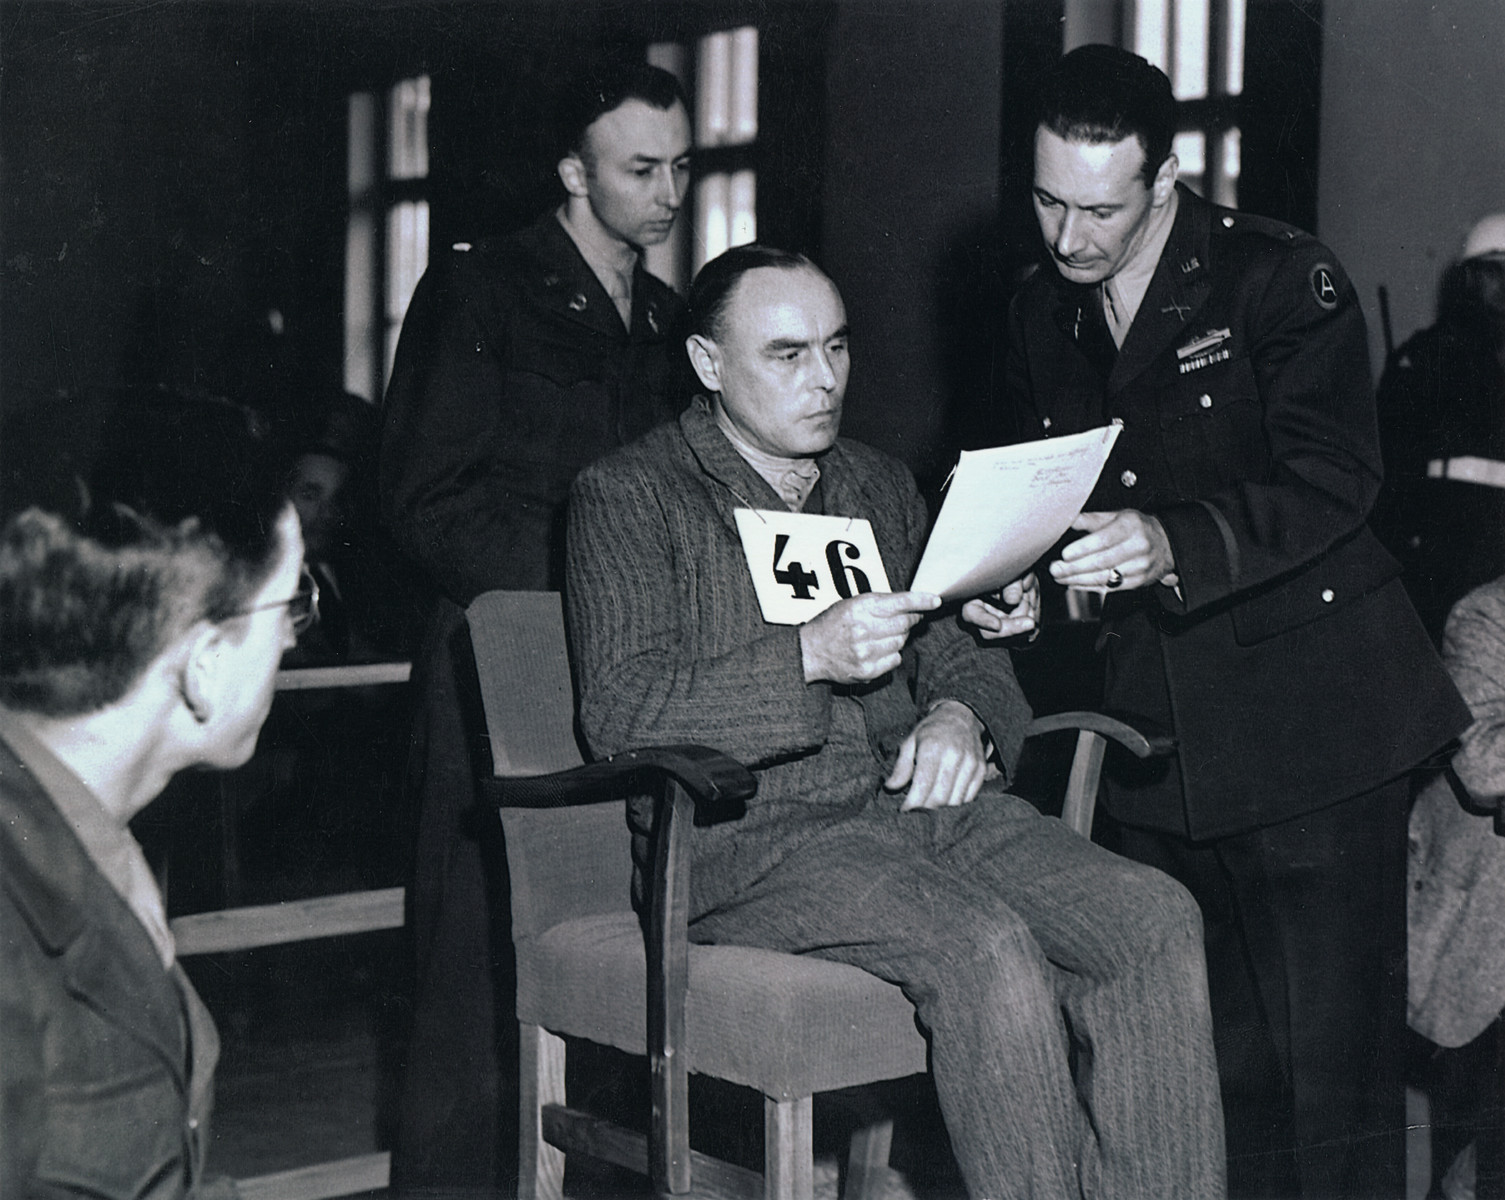 Defendant Vincenz Nohel reads his statement at the Mauthausen war crimes trial.  He was later sentenced to death by hanging.